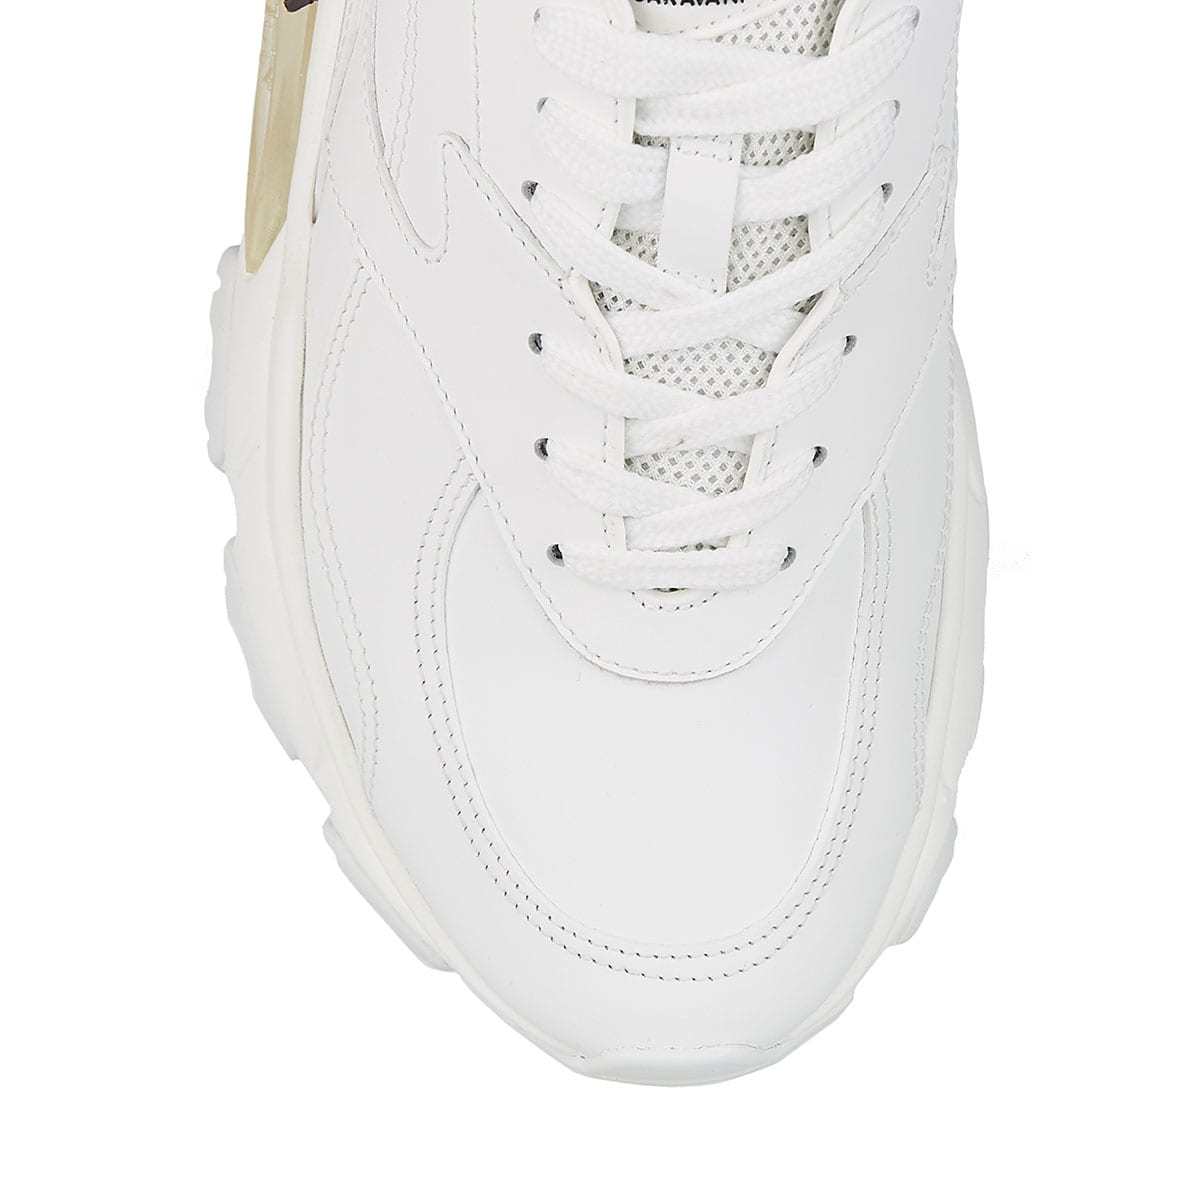 x Undercover printed leather sneakers